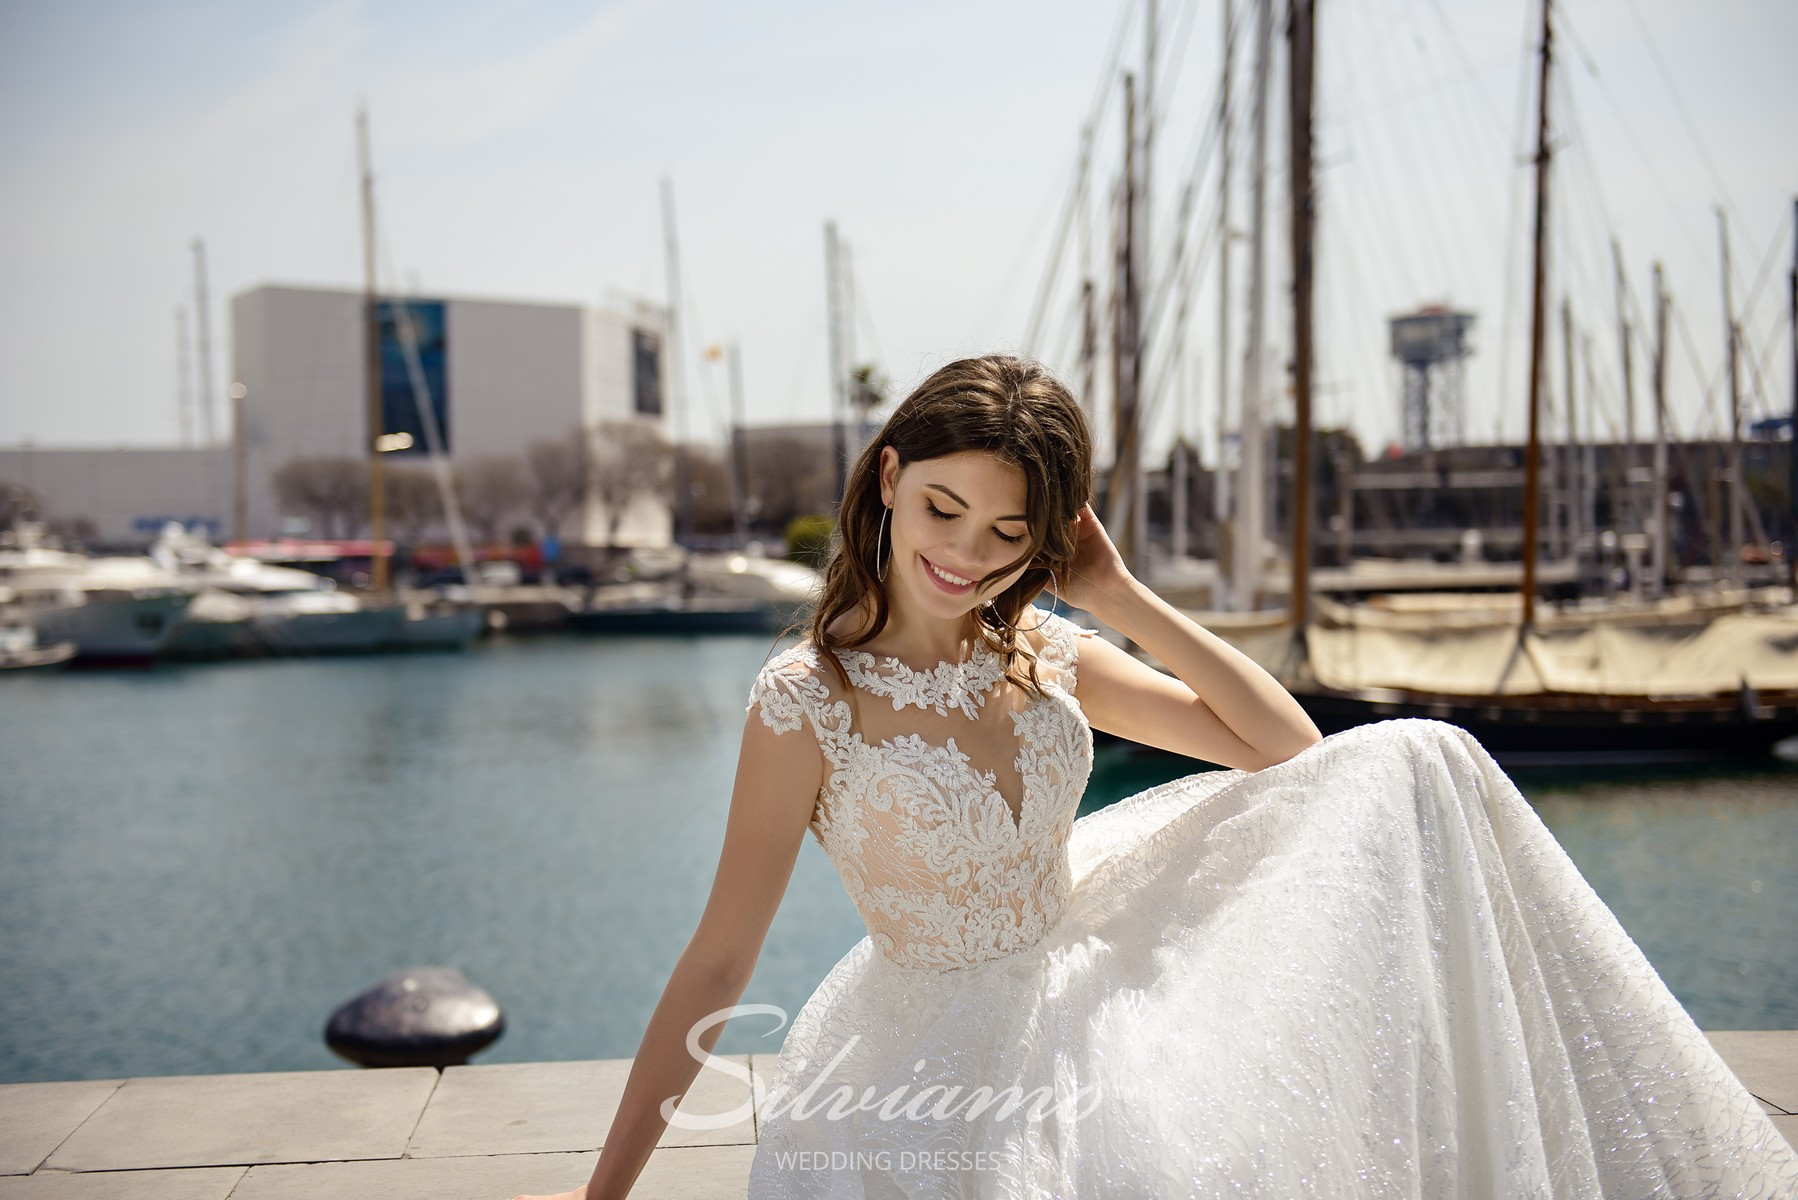 Lace wedding dress from Silviamo-1